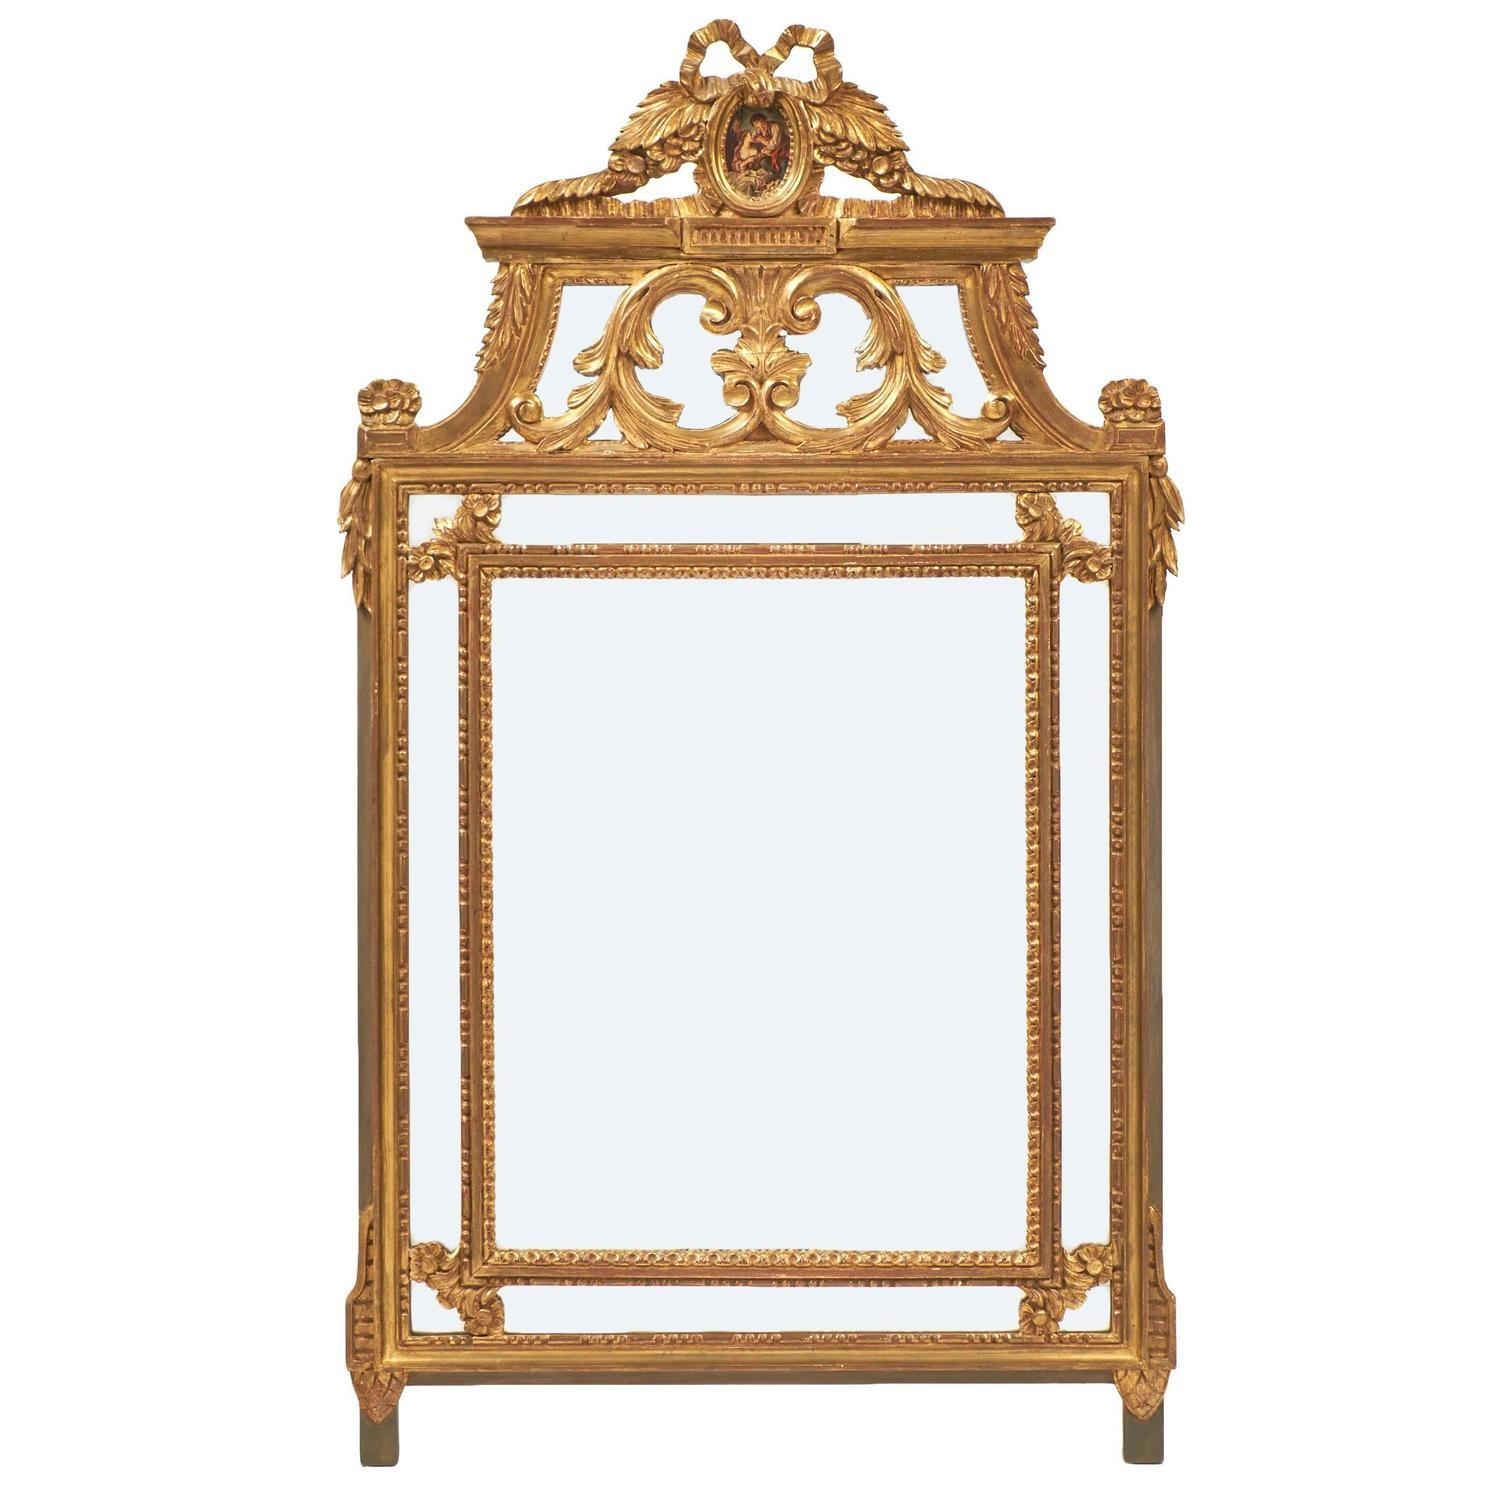 Ornate Gold Leaf Louis Xvi Mirror – Jean Marc Fray With Regard To Gold Ornate Mirrors (View 12 of 20)